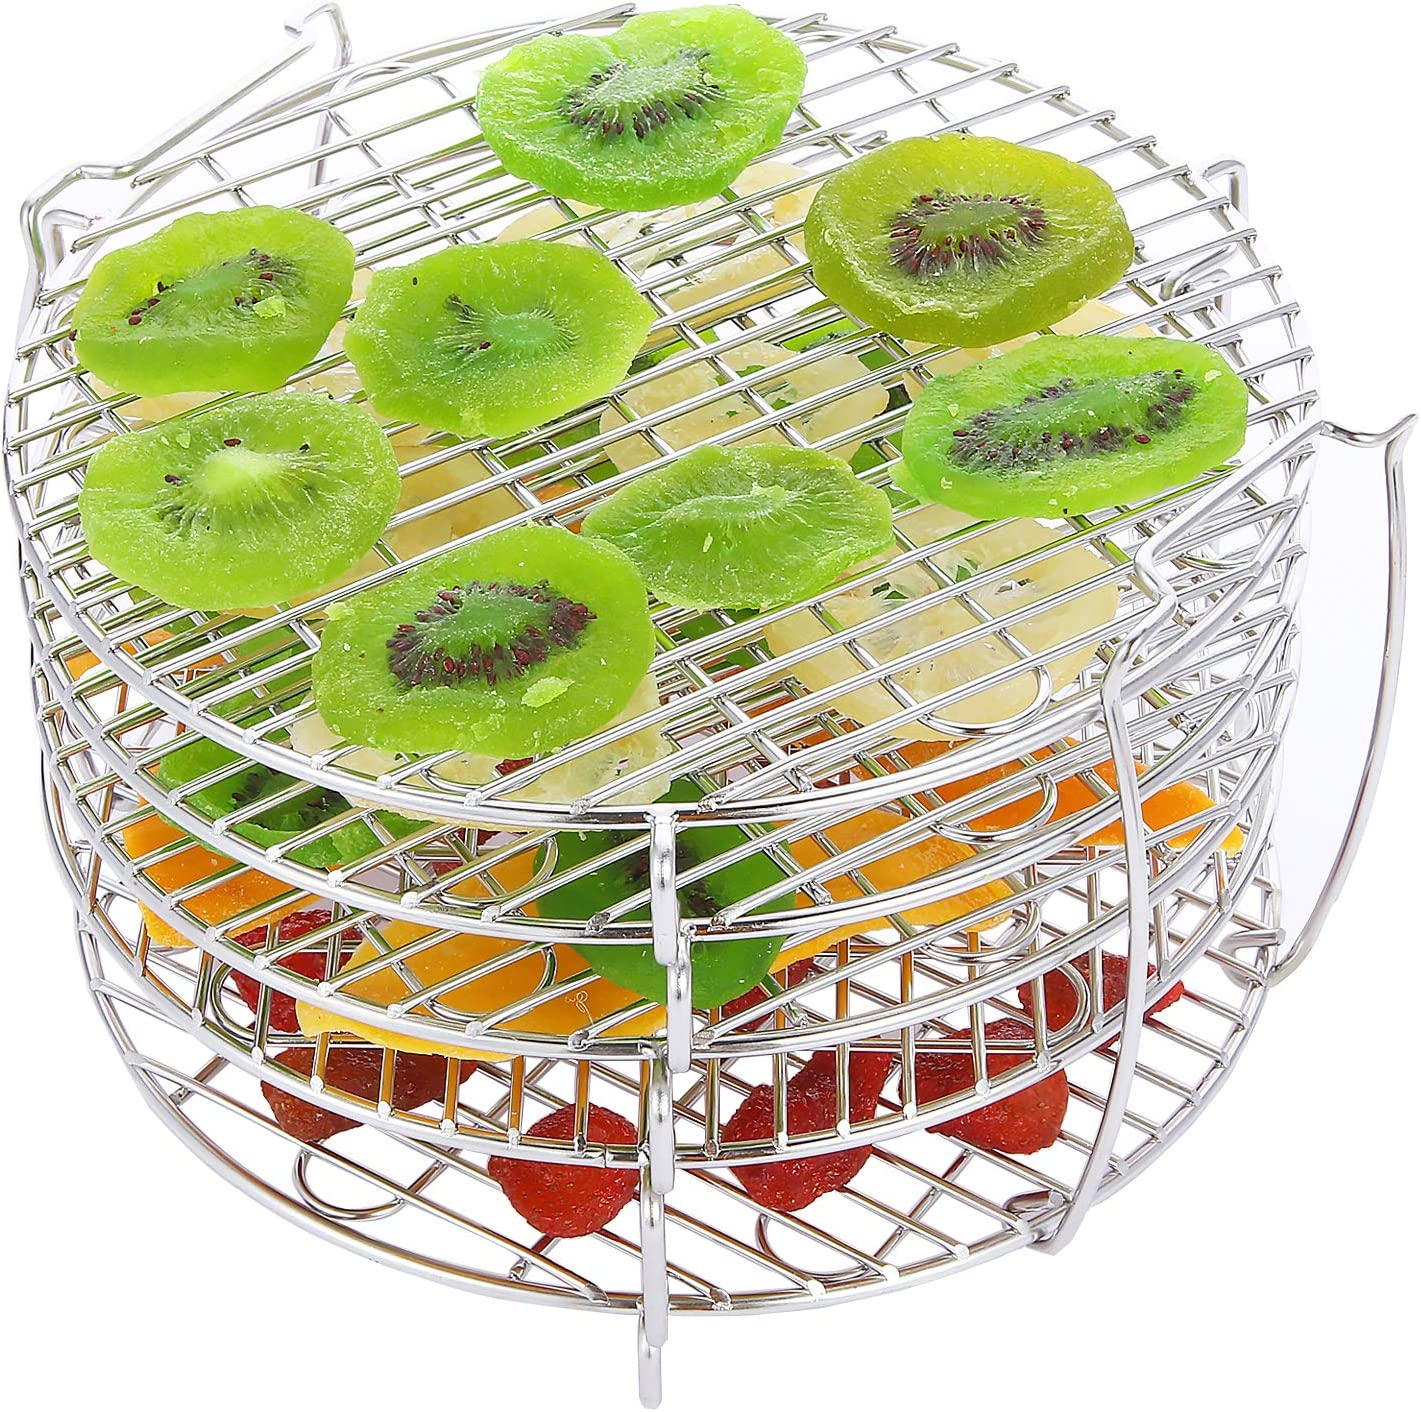 Dehydrator Rack for Ninja Foodi Accessories, Dehydrate Fruits and Meats, Food Grade 304 Stainless Steel, Five Stackable Layers Compatible with Ninja Foodi Pressure Cooker and Air Fryer 6.5qt and 8 qt